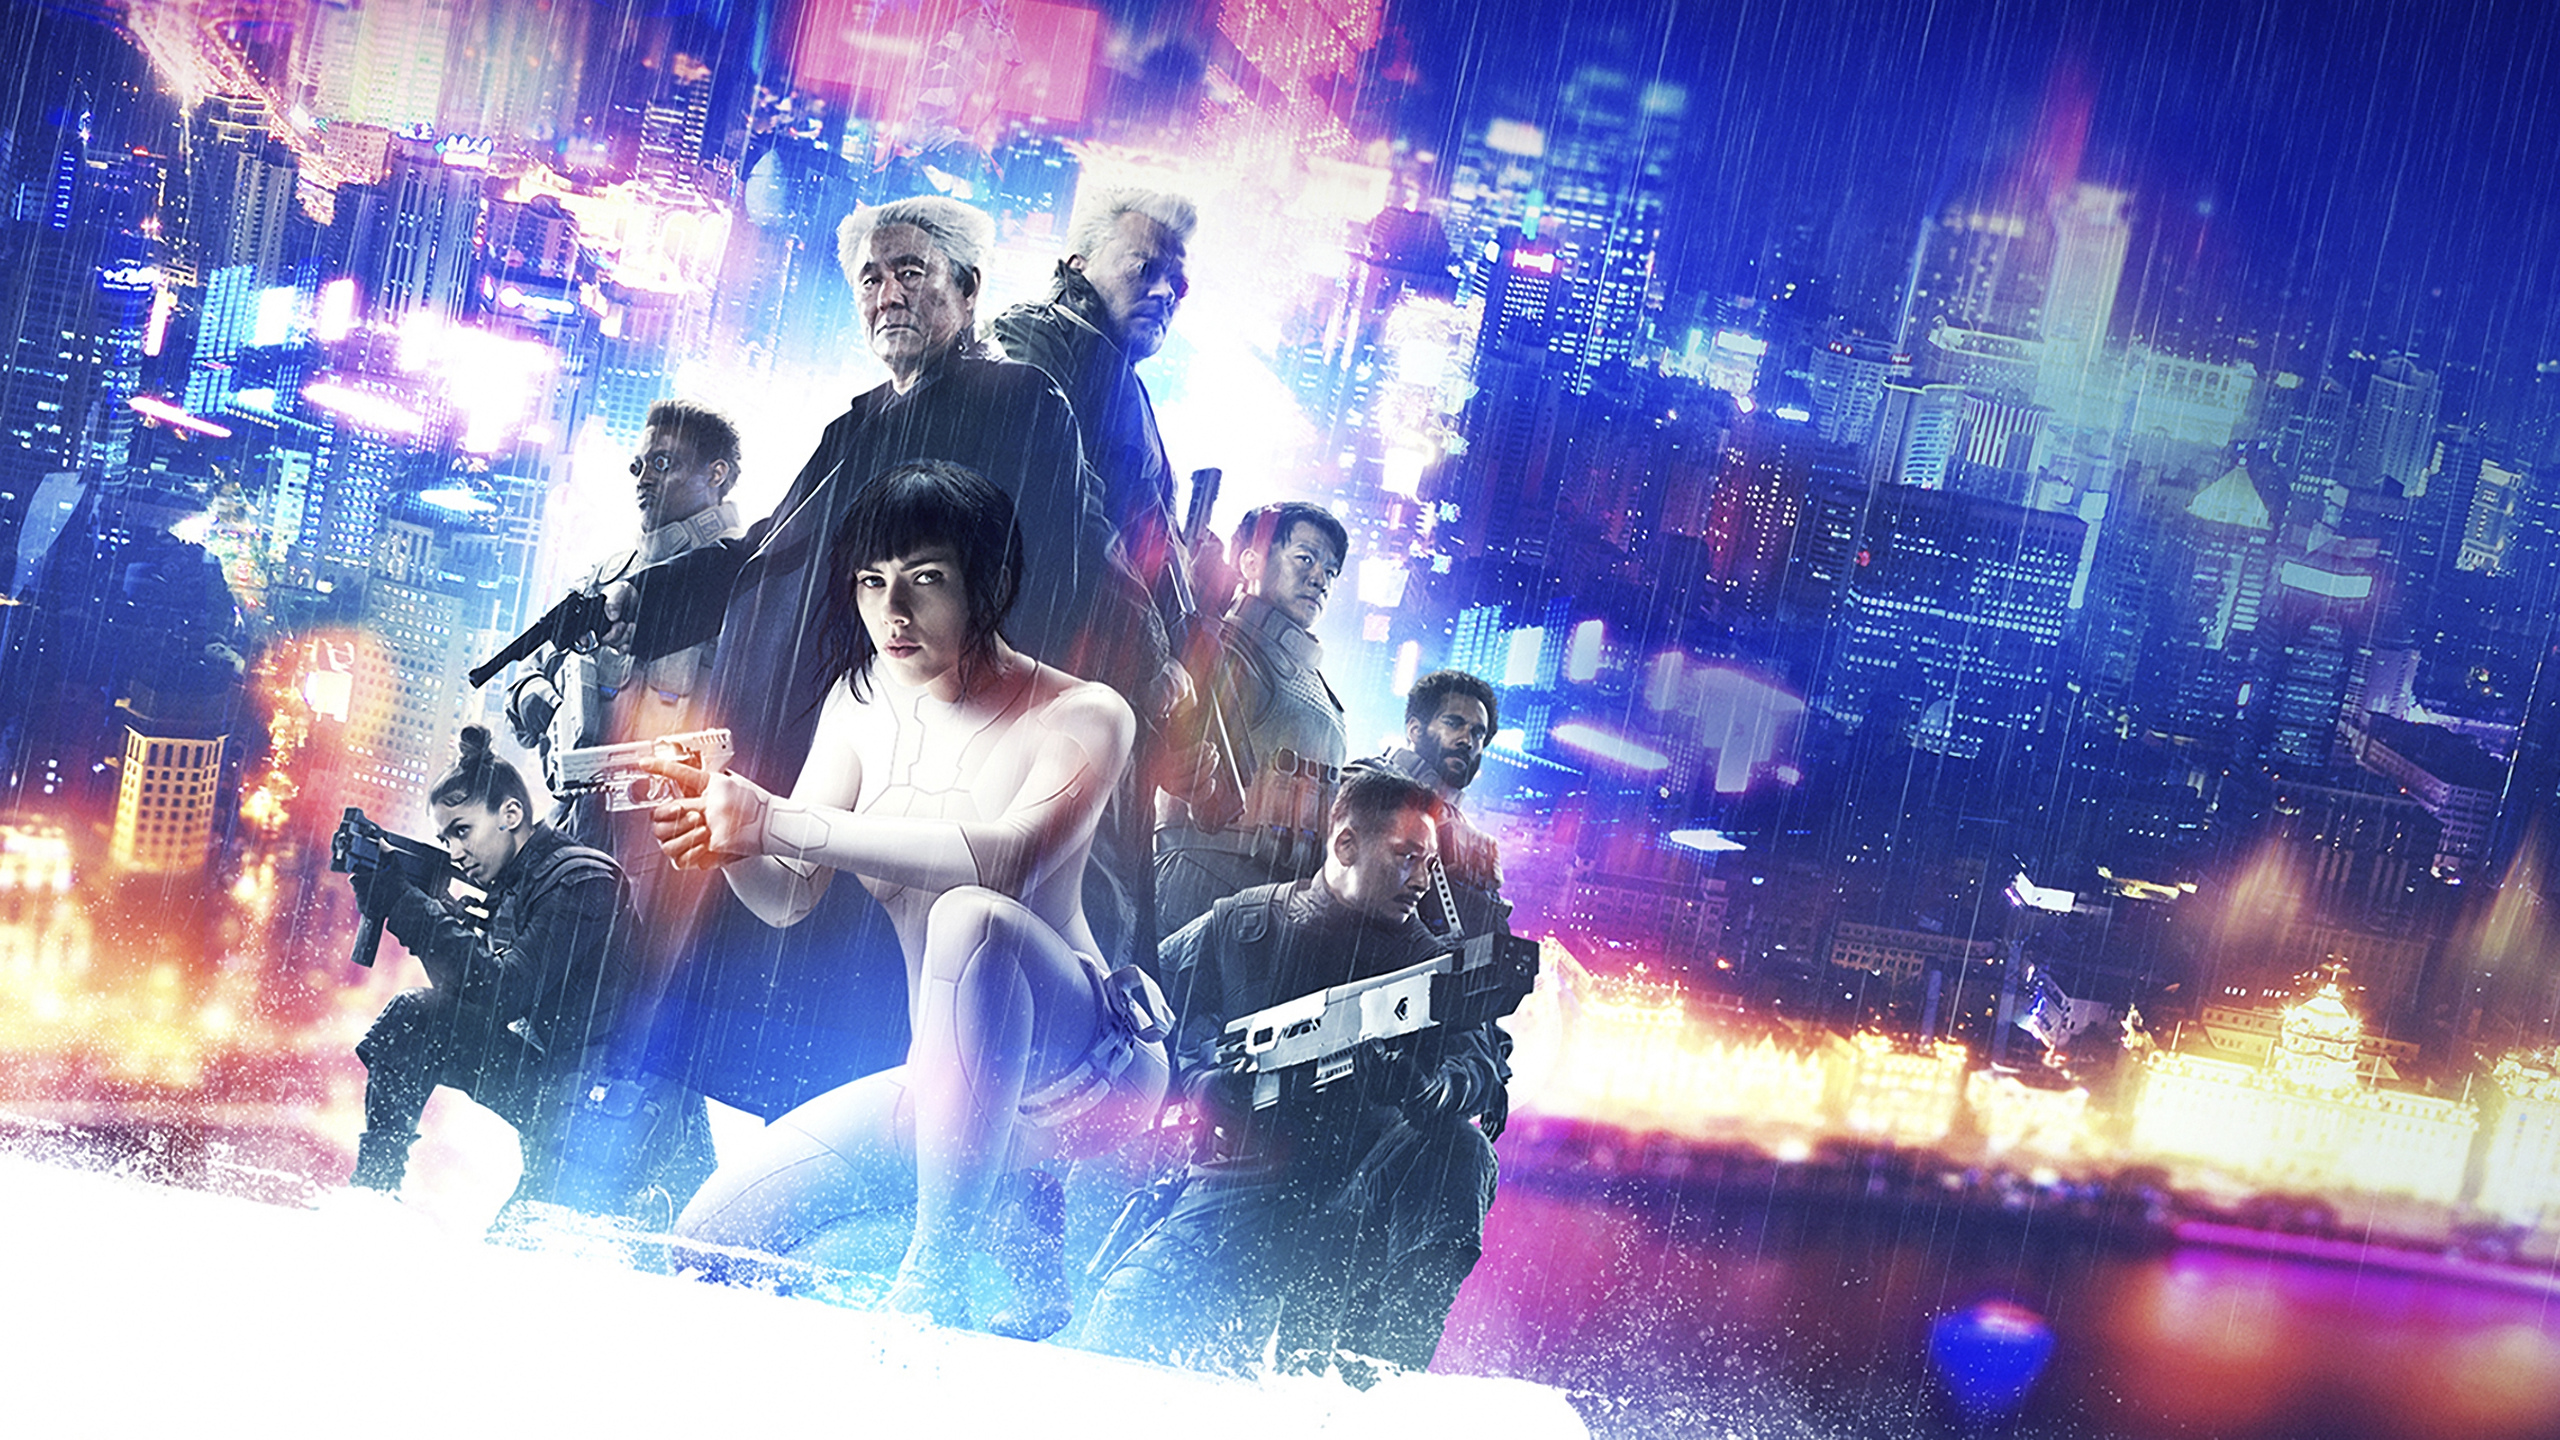 ghost in the shell movie poster hd